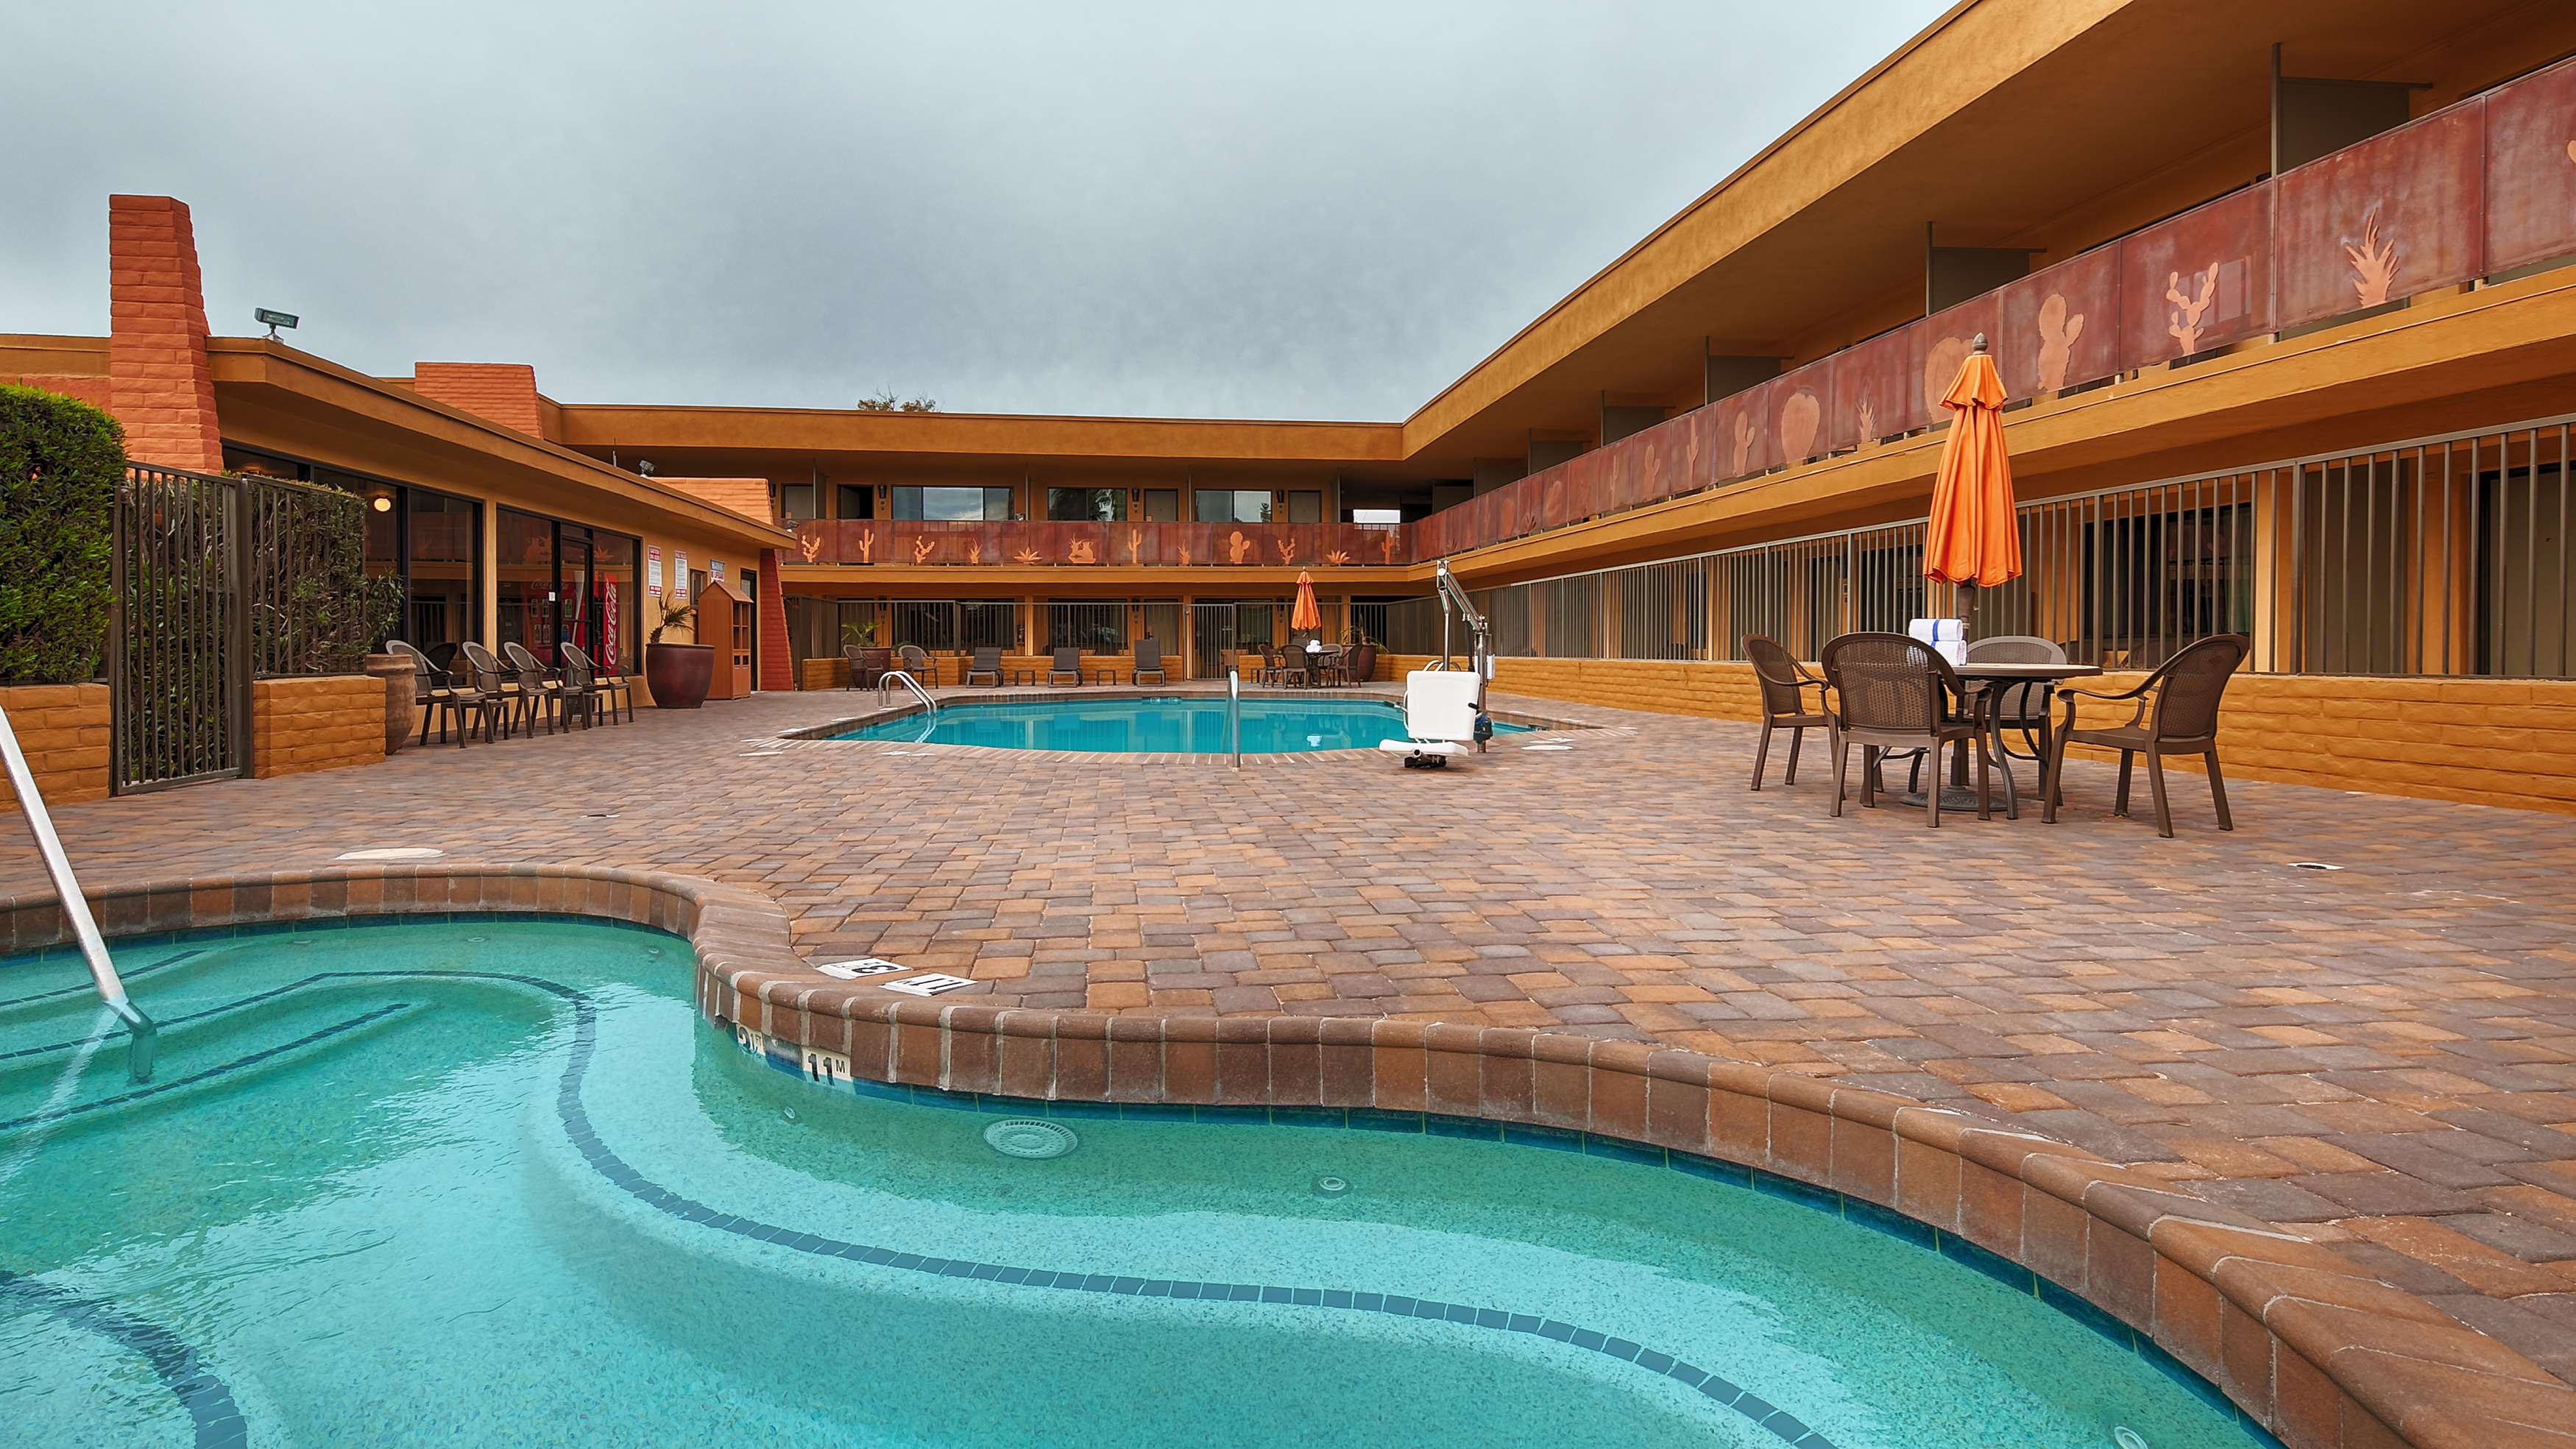 Sun City Az Hotels Motels